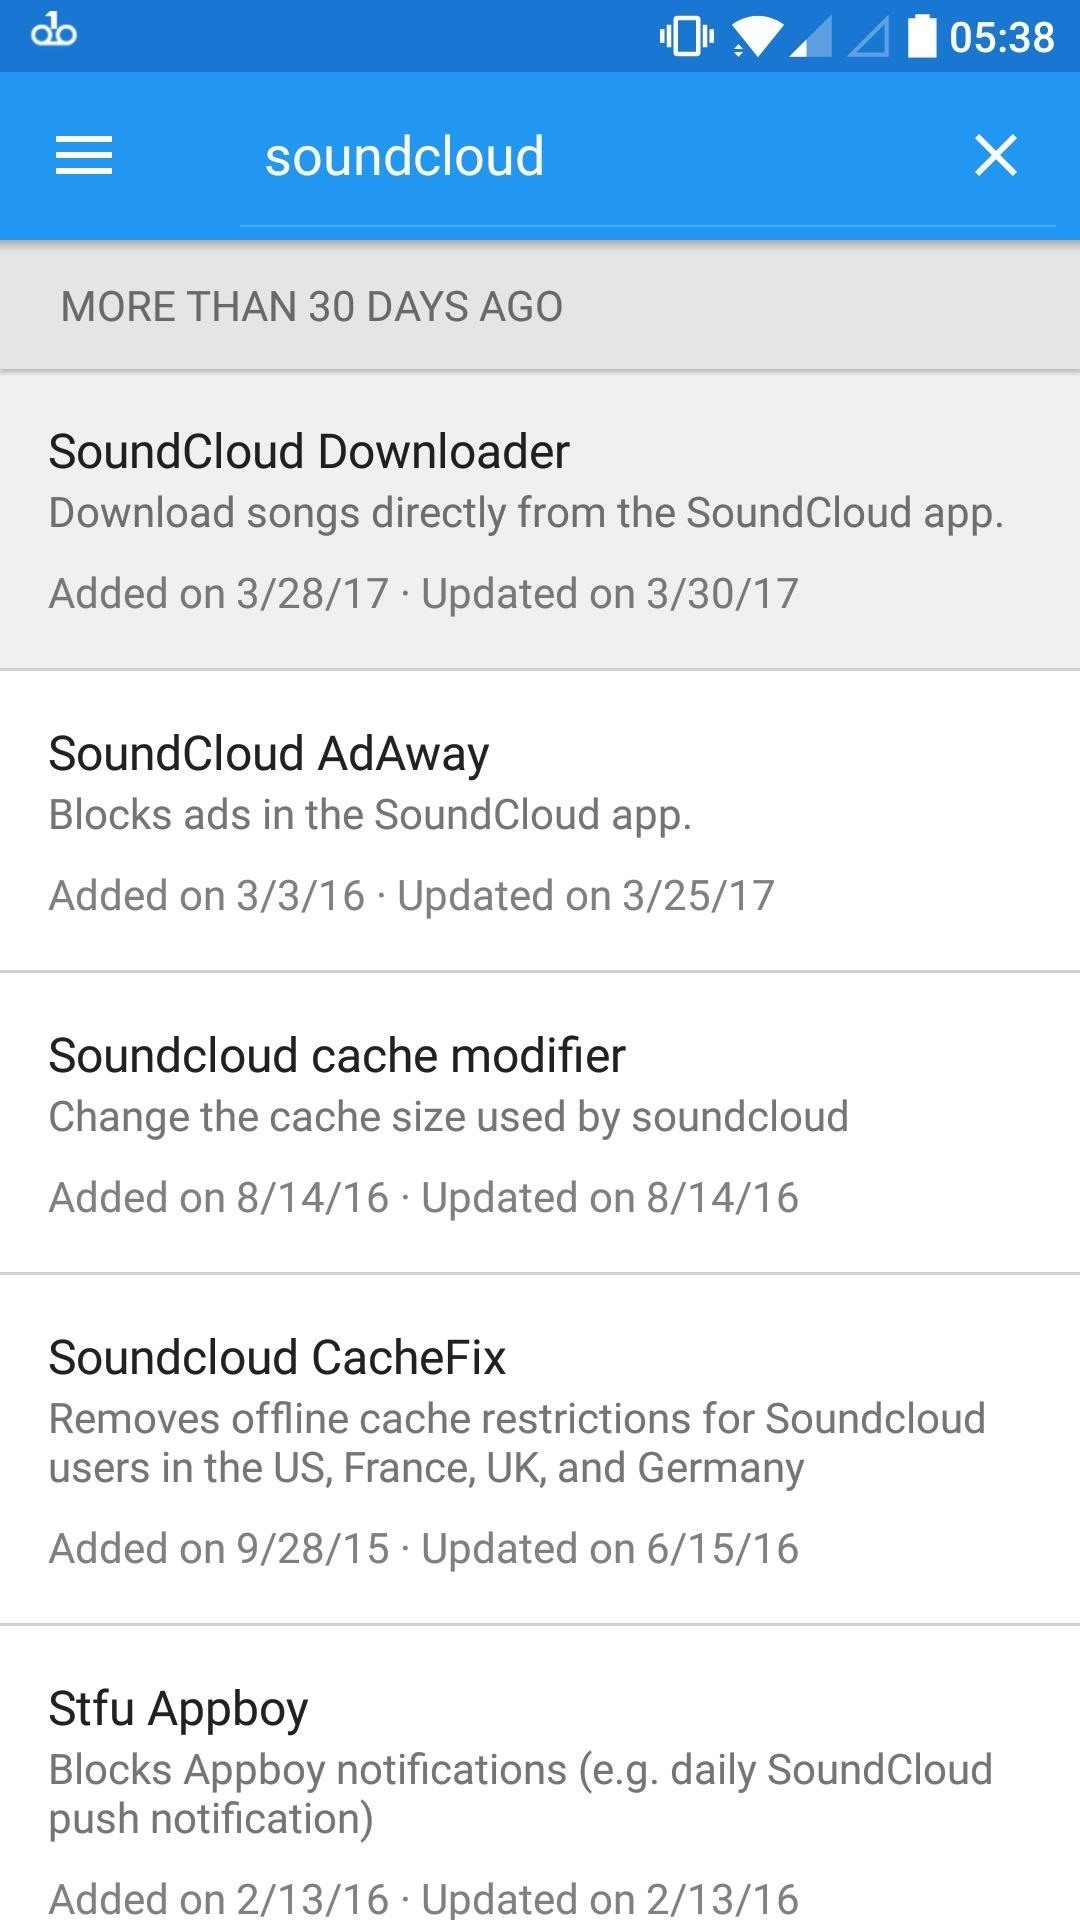 Where does soundcloud download to